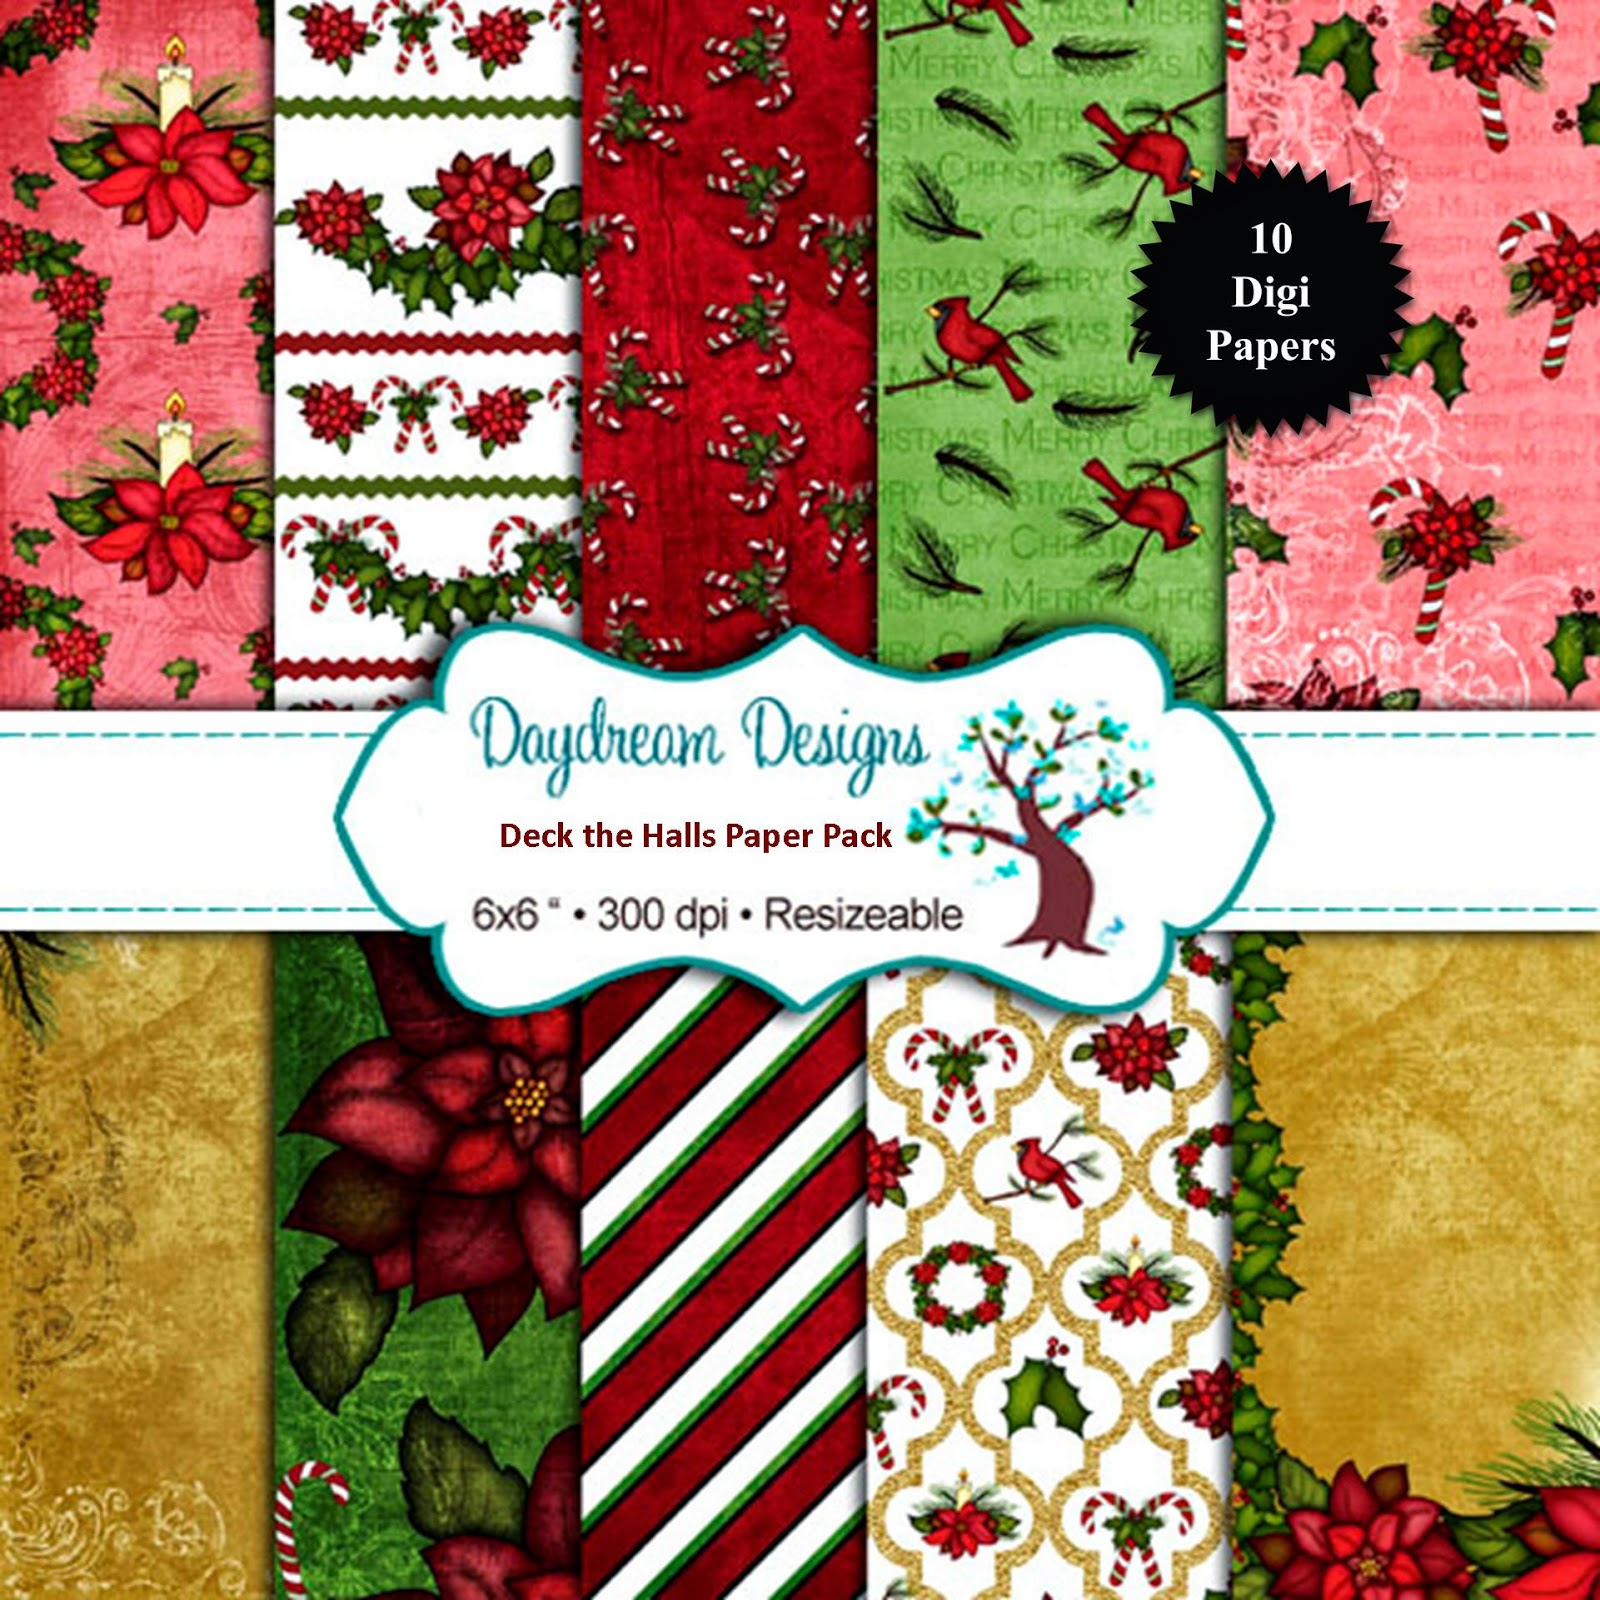 http://www.dianesdaydreamdesigns.com/store/p396/DD-Deck_the_Halls_Digi_Papers.html